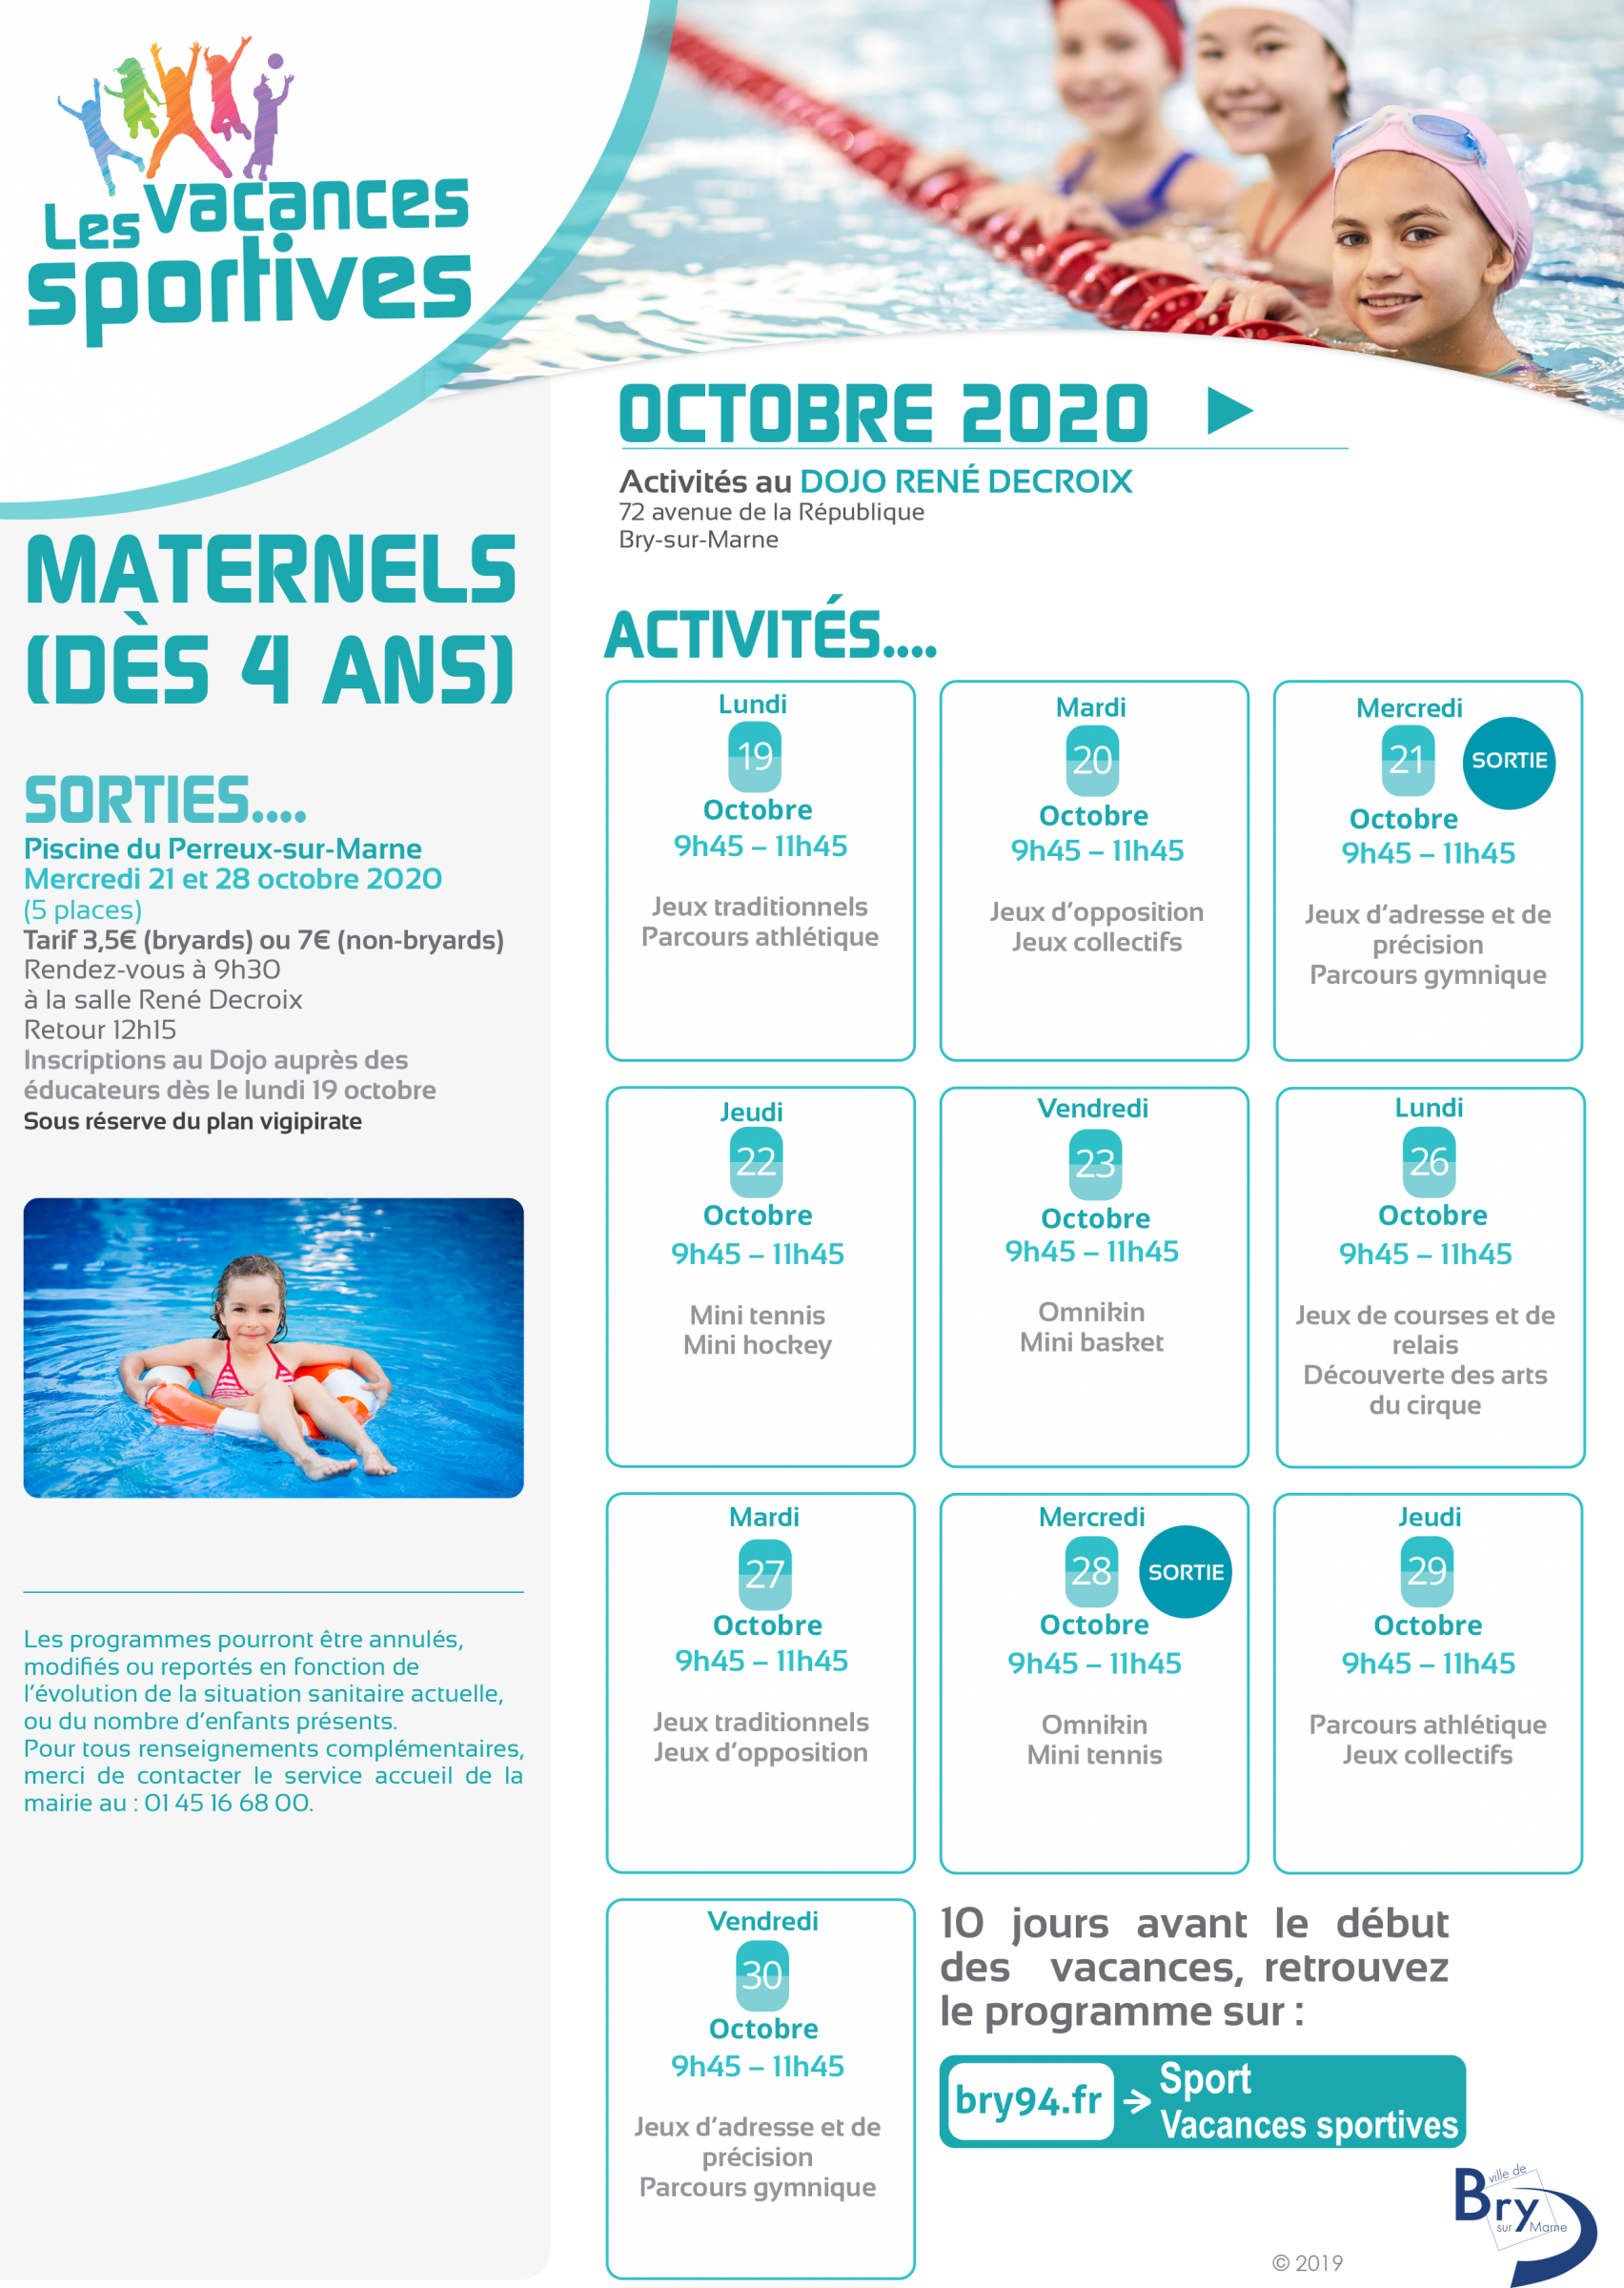 Vacances sportives Maternels 2020